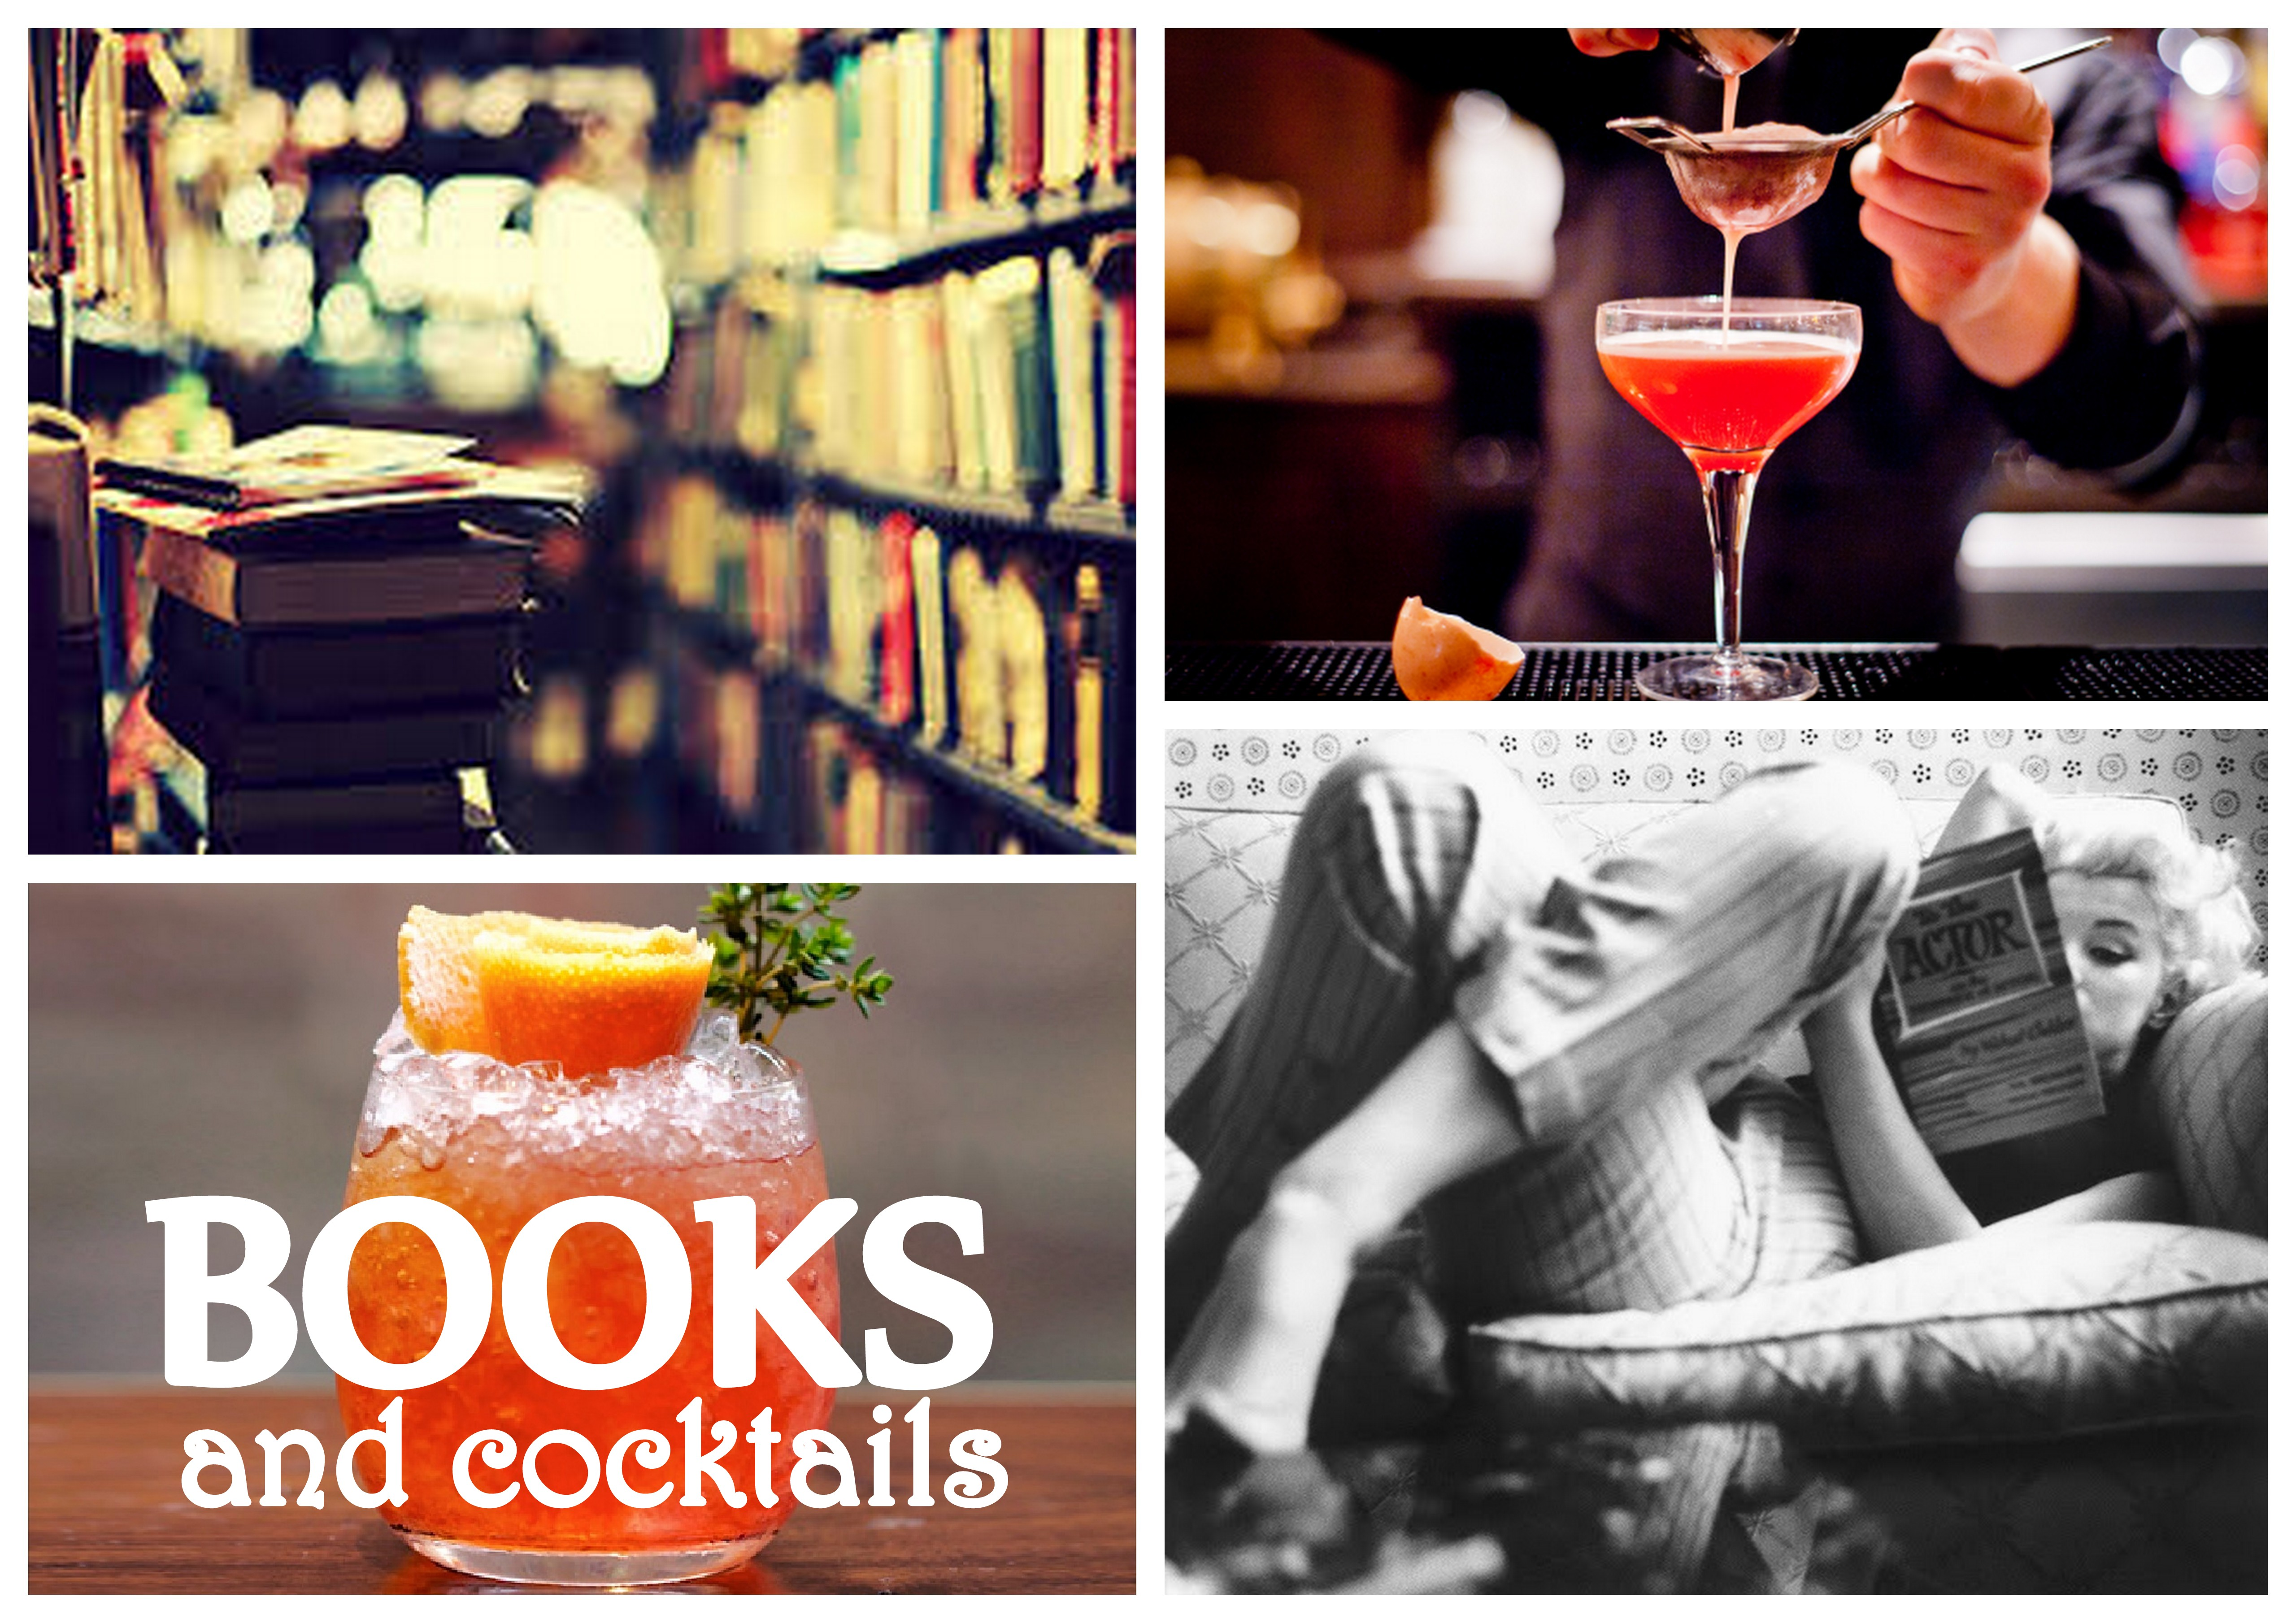 BOOKSANDCOCKTAILS